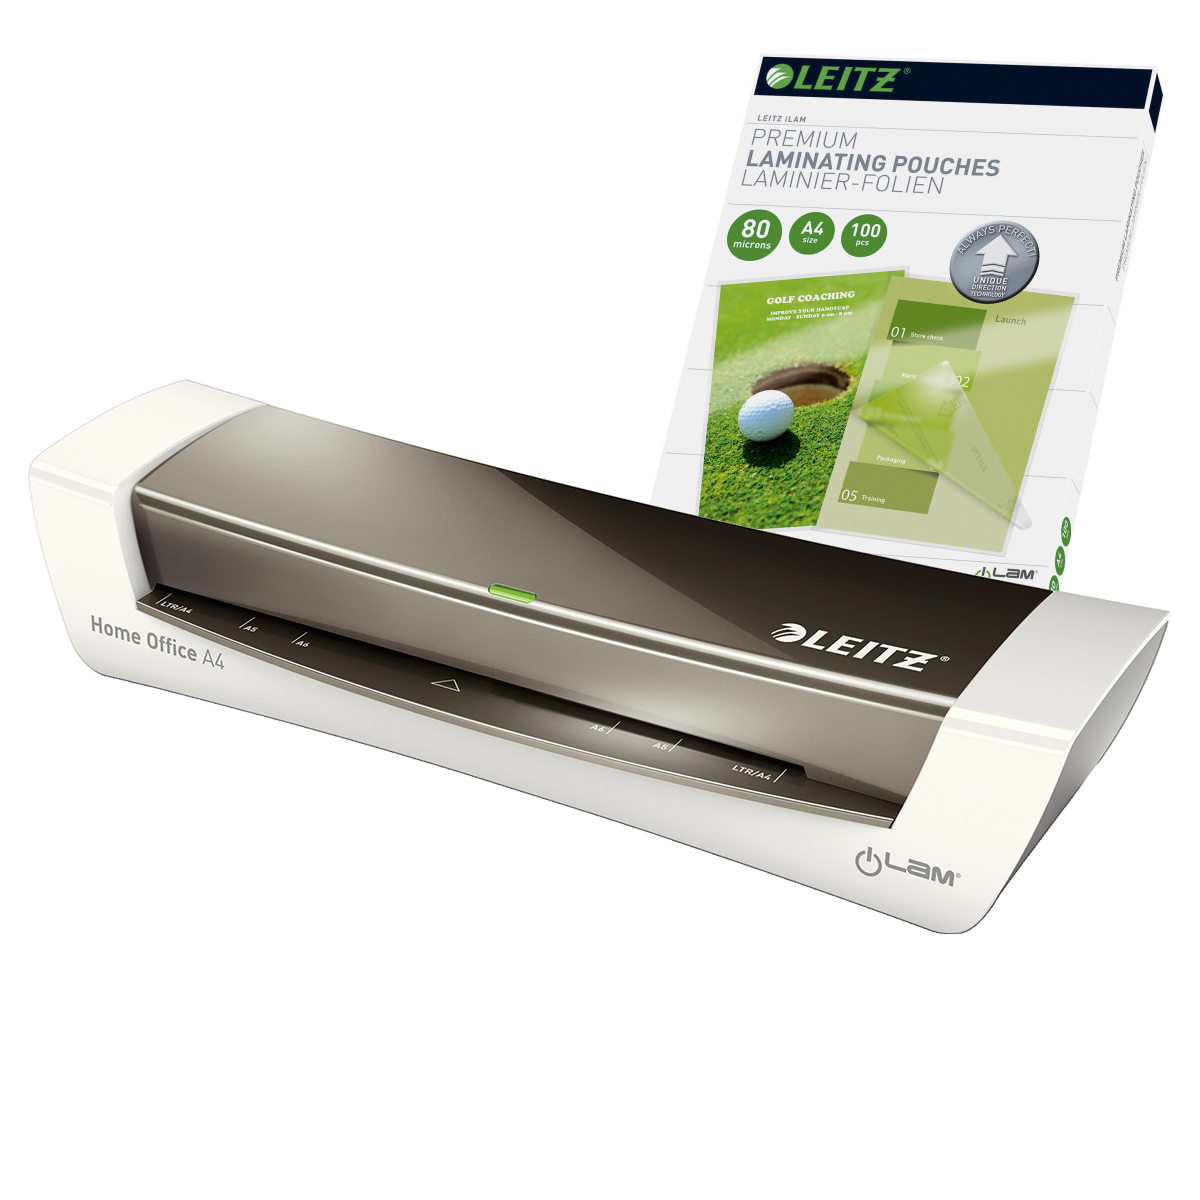 Leitz iLAM Home Office A4 Grey Laminator and Pouches Bundle